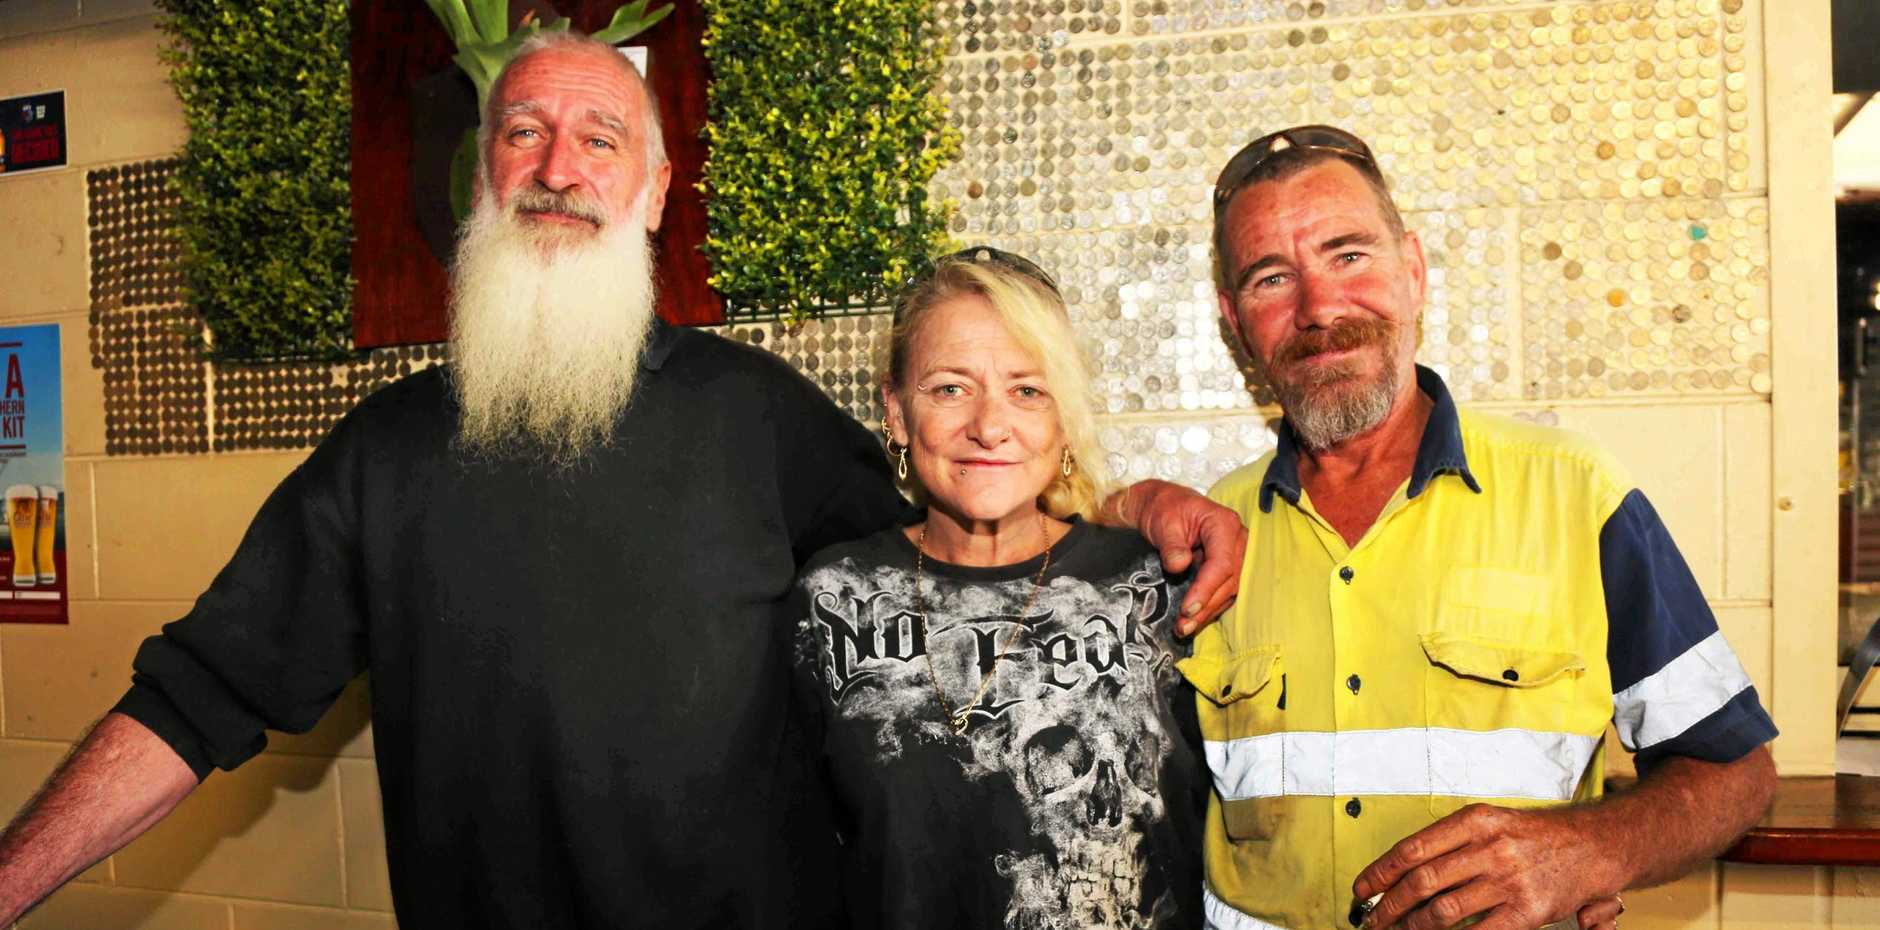 FOR A GOOD CAUSE: Mark Holmes, Sasha O'Sullivan and Gavin Le Strange have all helped raise money for the RACQ CQ Rescue Helicopter Service.